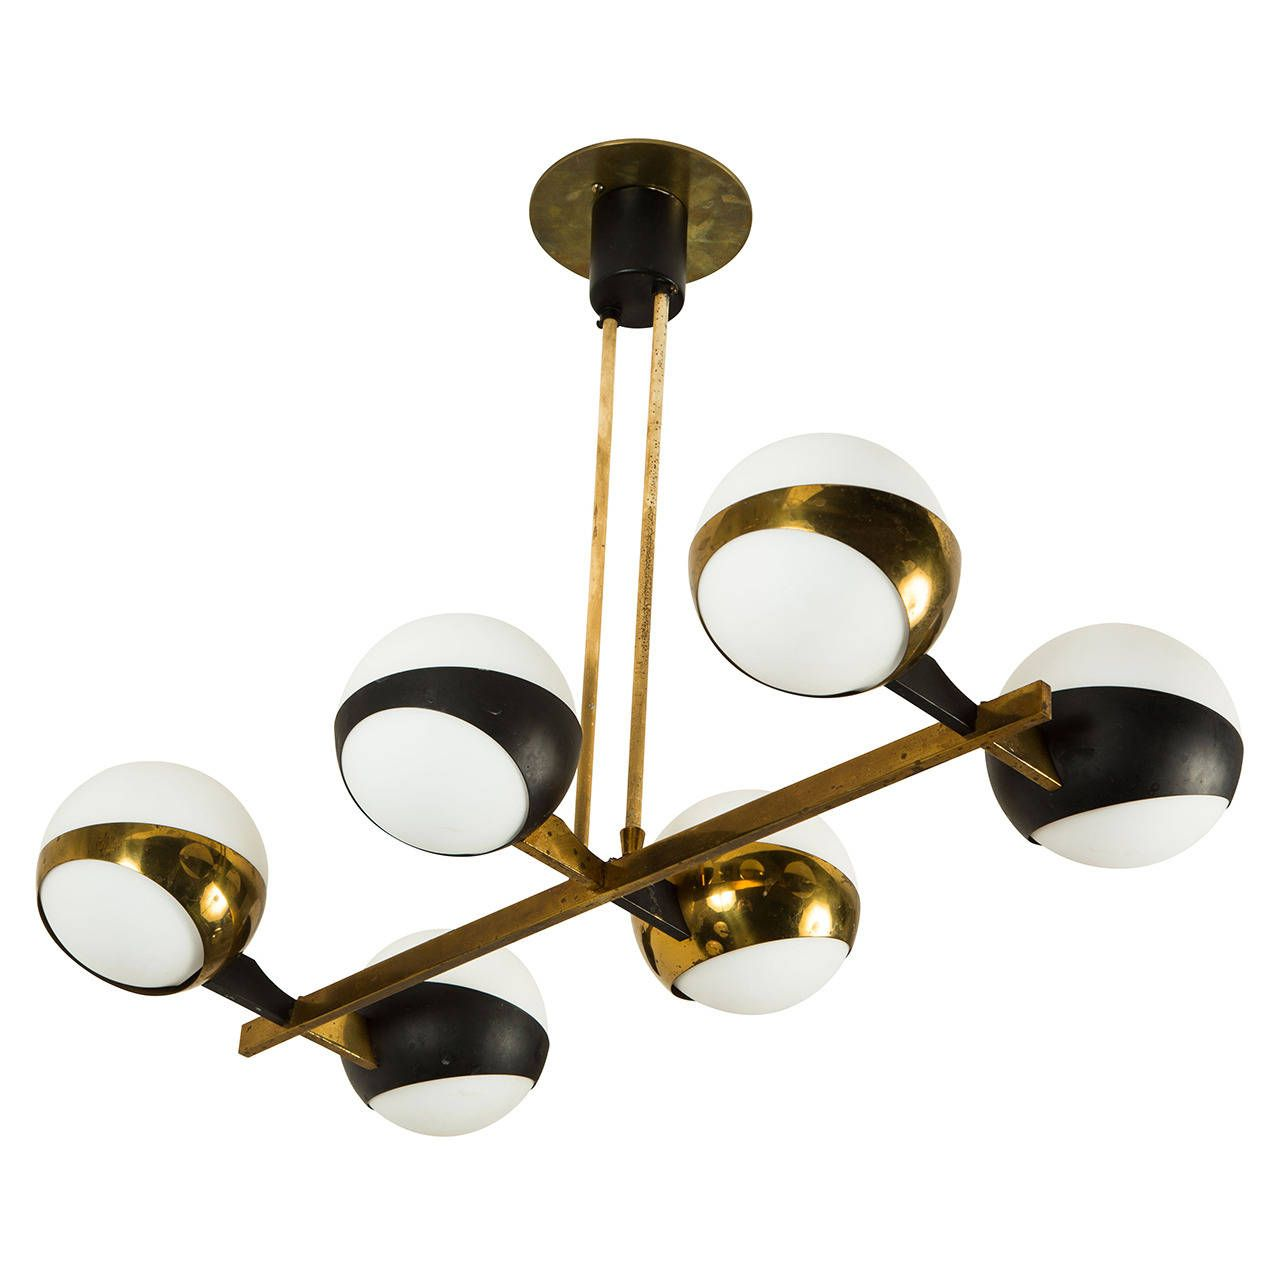 Stilnovo six arm chandelier pendant lighting chandeliers and modern stilnovo six arm chandelier aloadofball Gallery